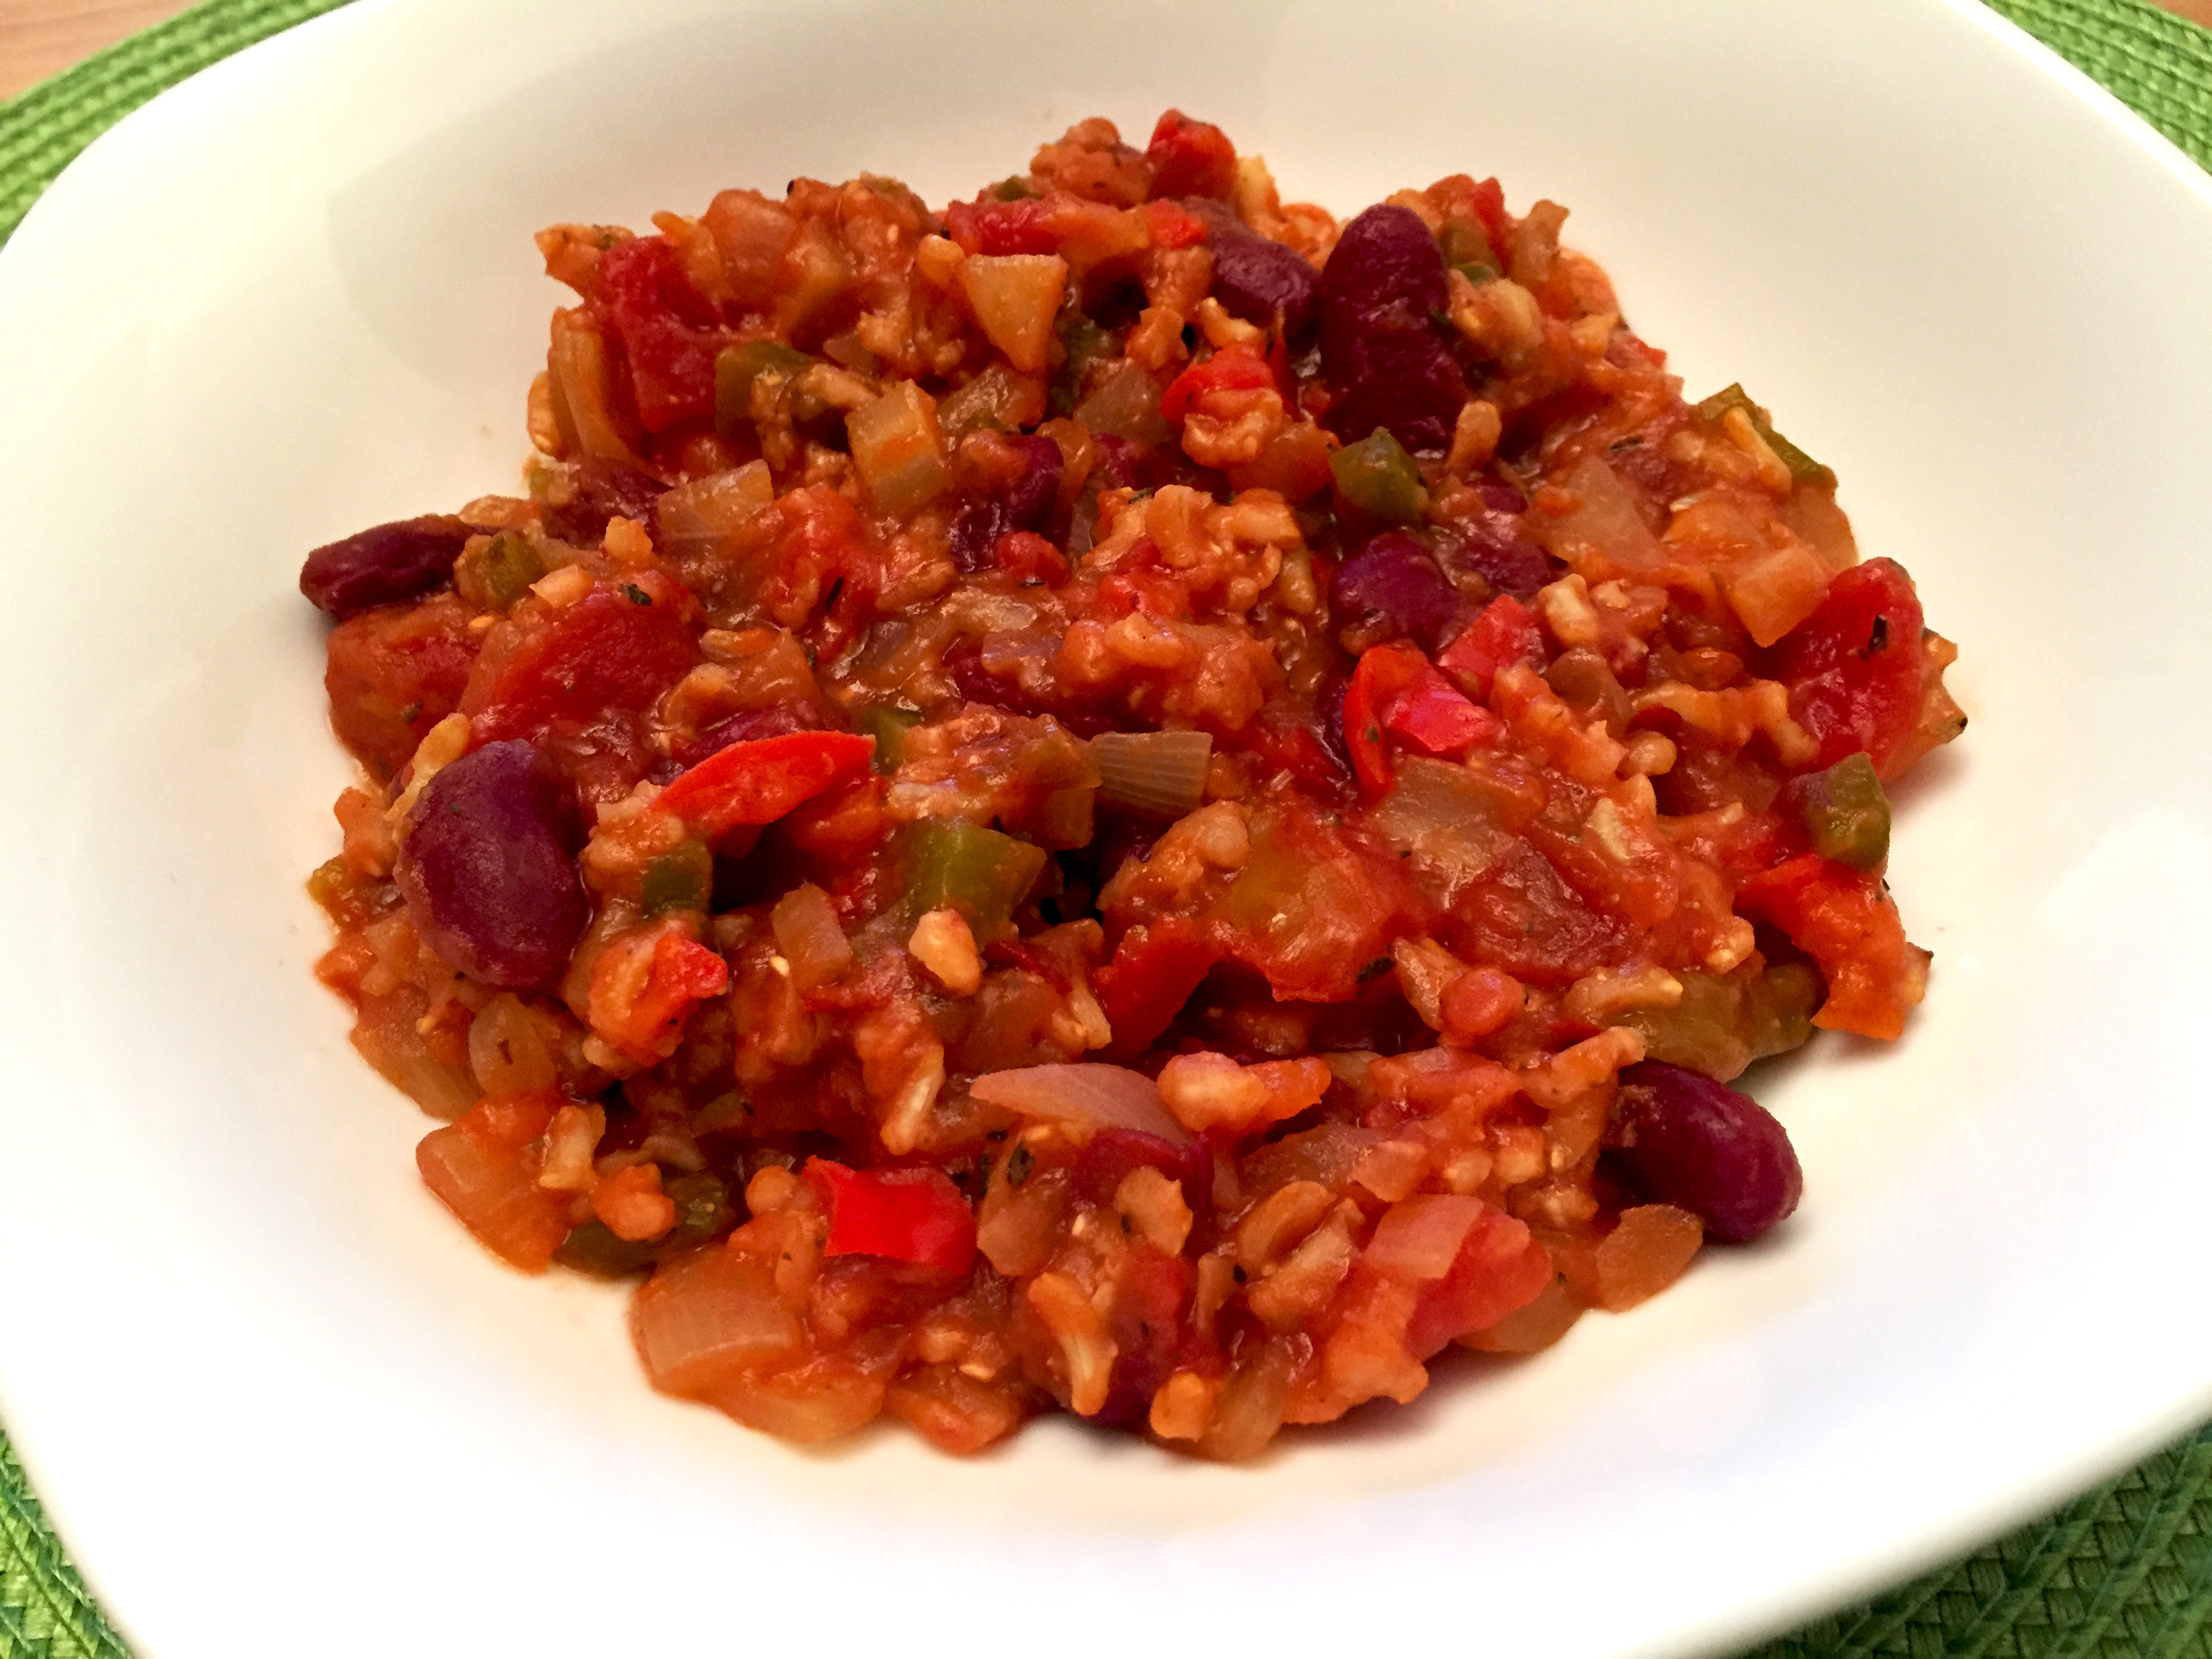 Rice And Beans Healthy  Healthy Red Beans and Rice Colorful & Delicious Creole